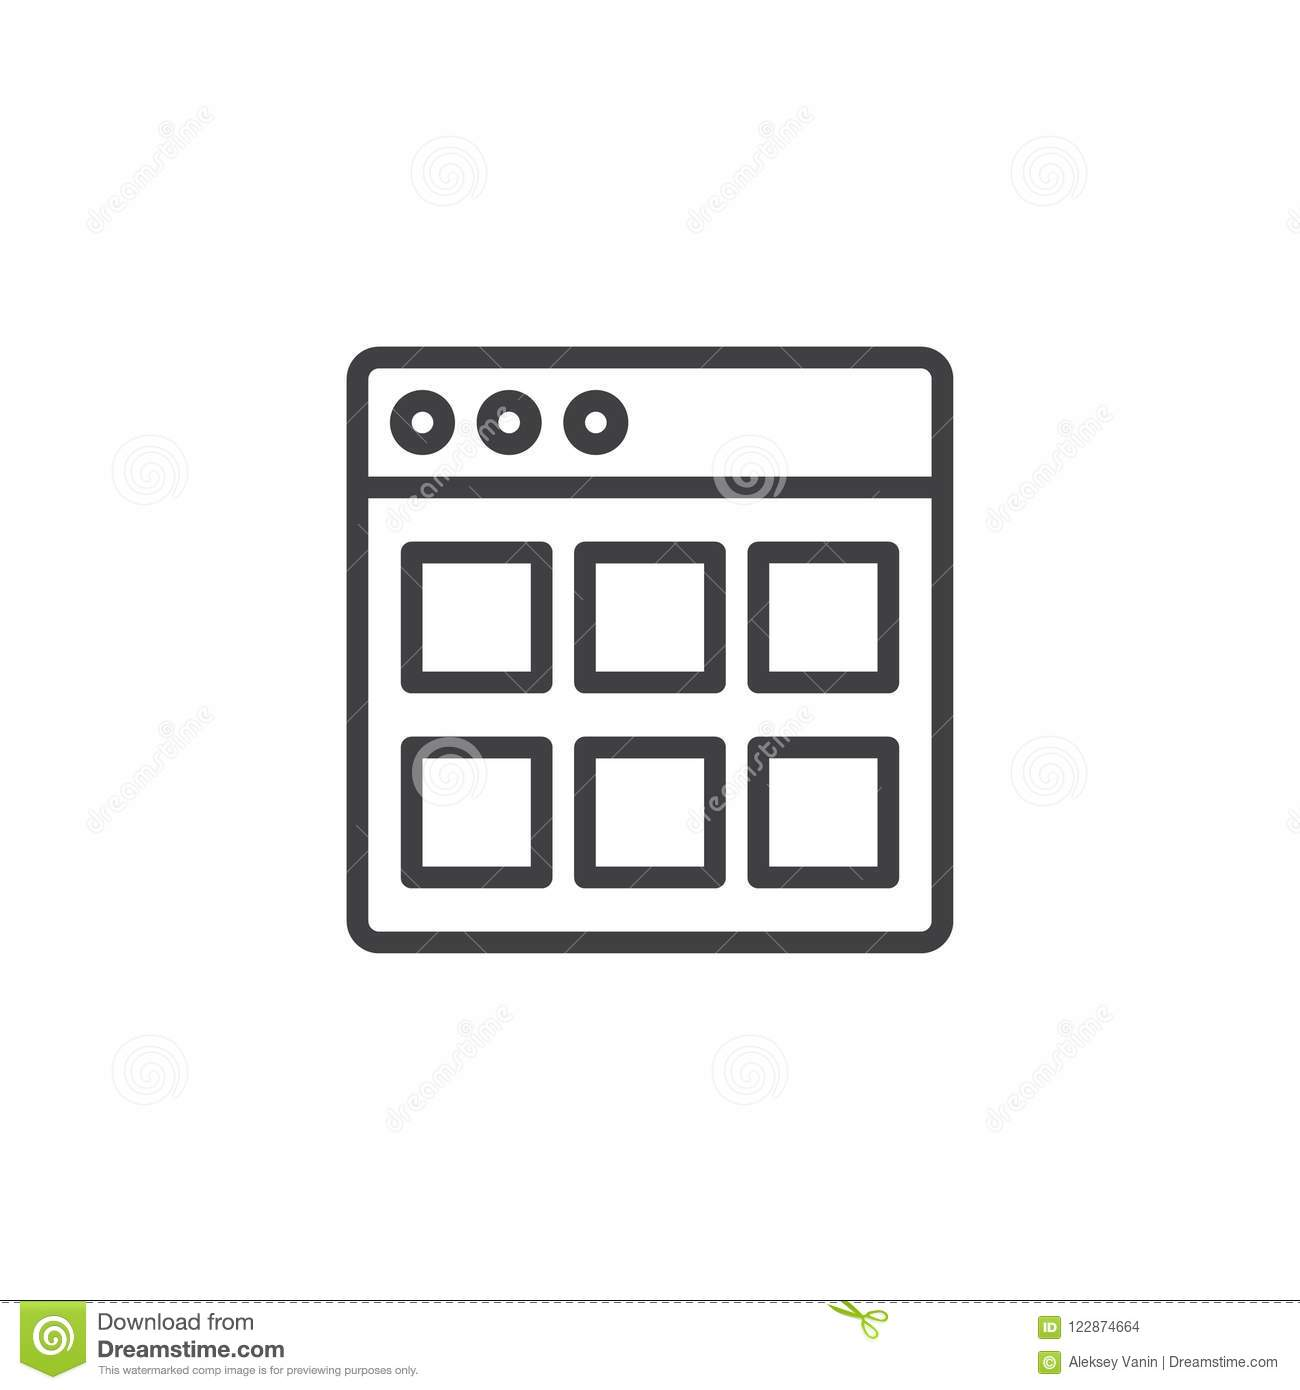 Website Modules outline icon